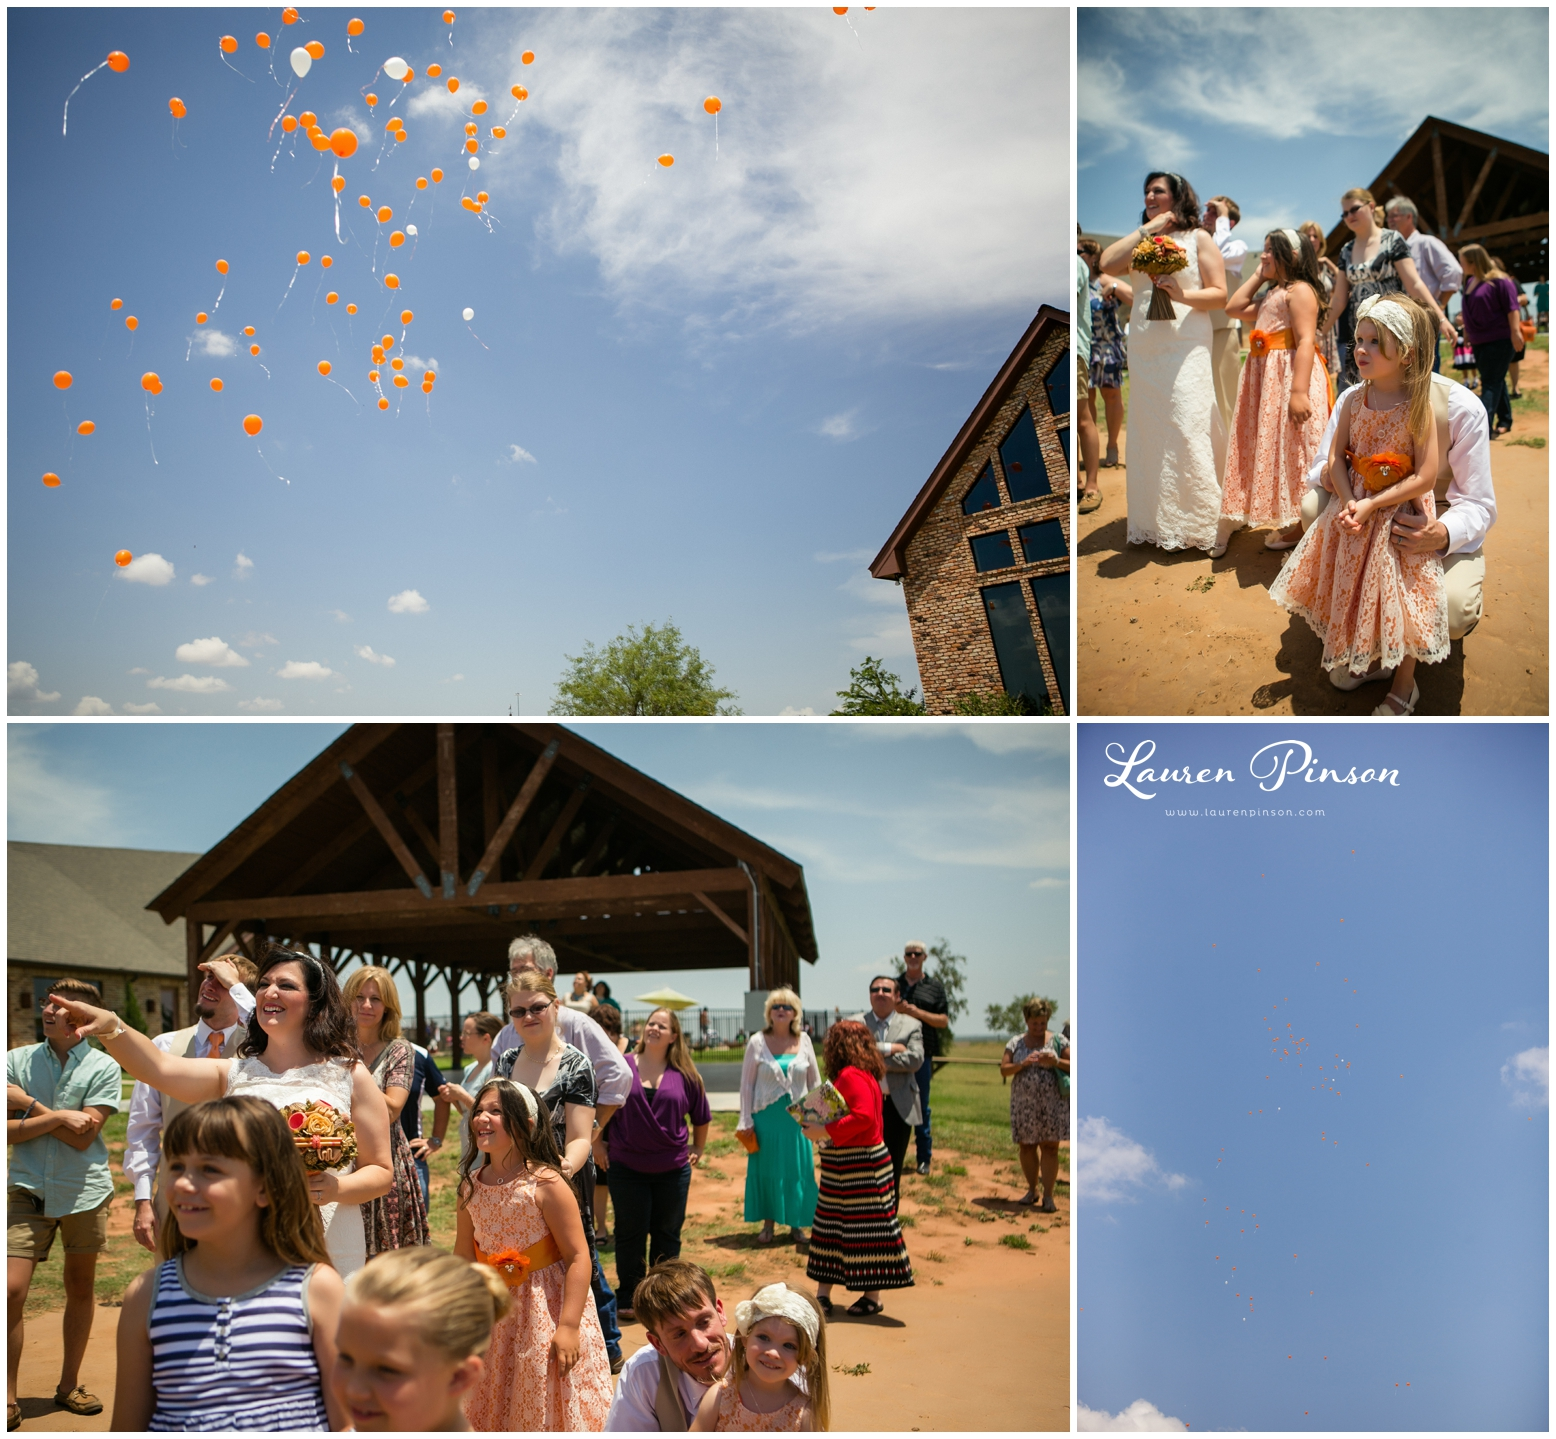 wichita-falls-coyote-ranch-resort-wedding-texas-photography-family-ceremony-balloons-rustic-lace_0340.jpg